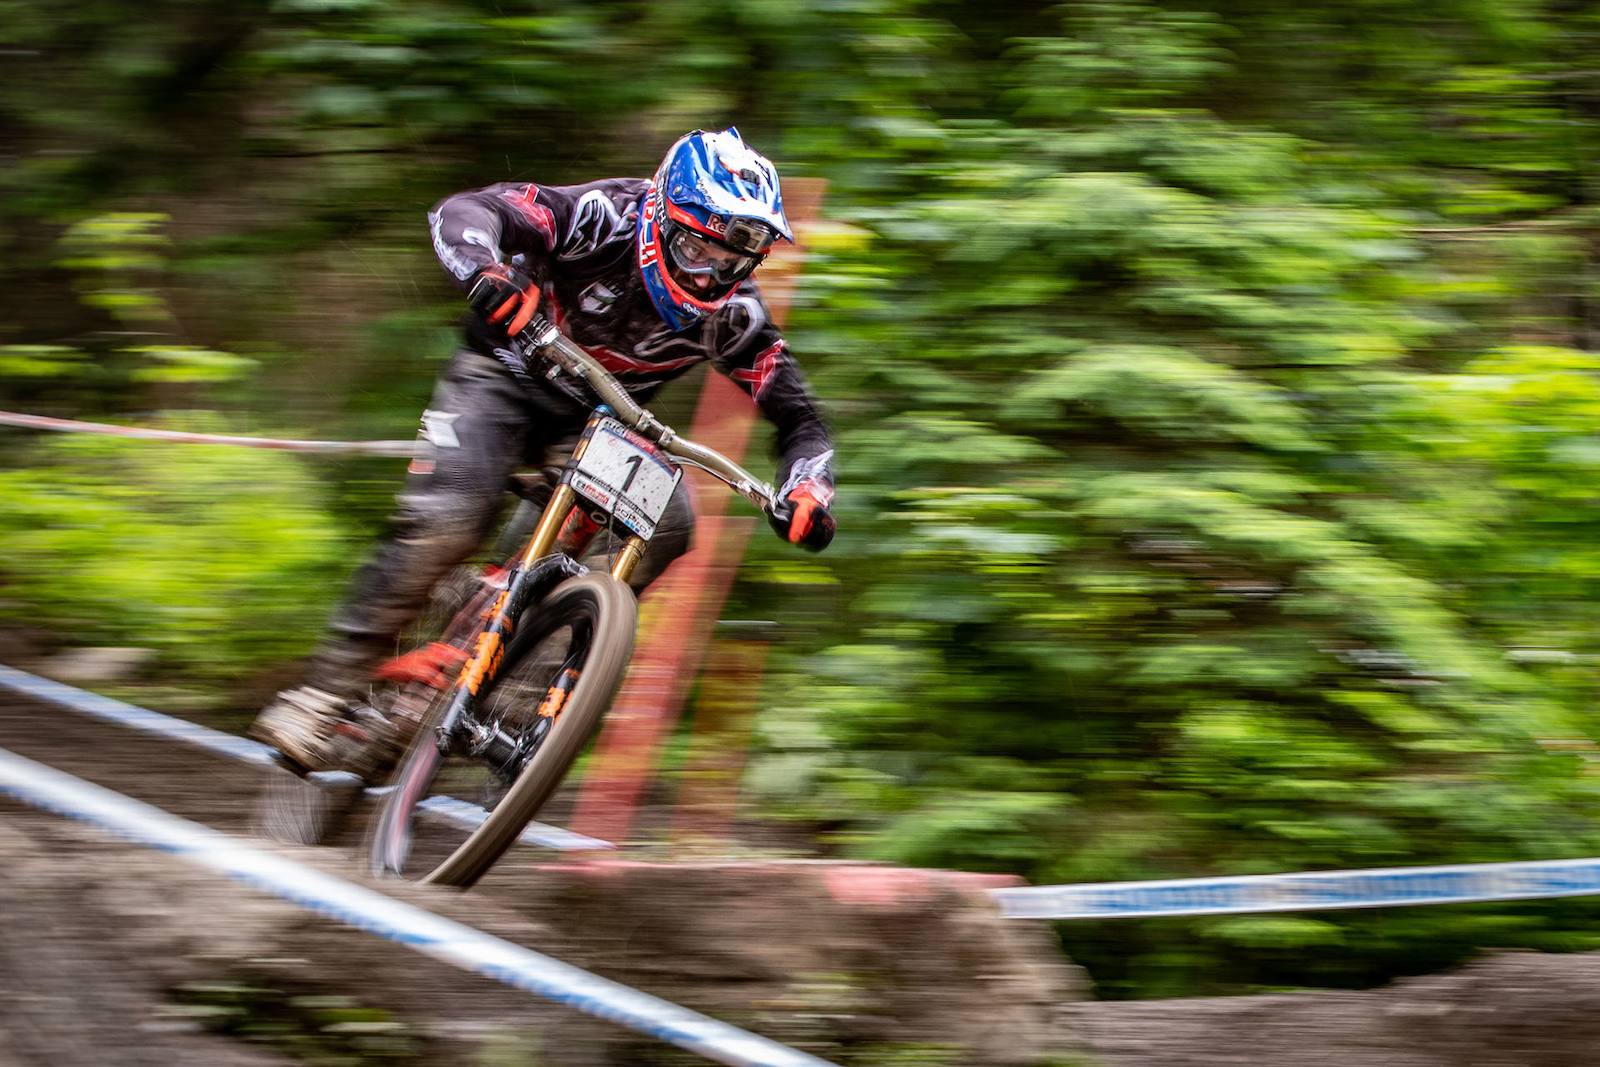 cagreenwood - Aaron Gwin on the charge to 1st place at the 2016 Leogang DHWC.